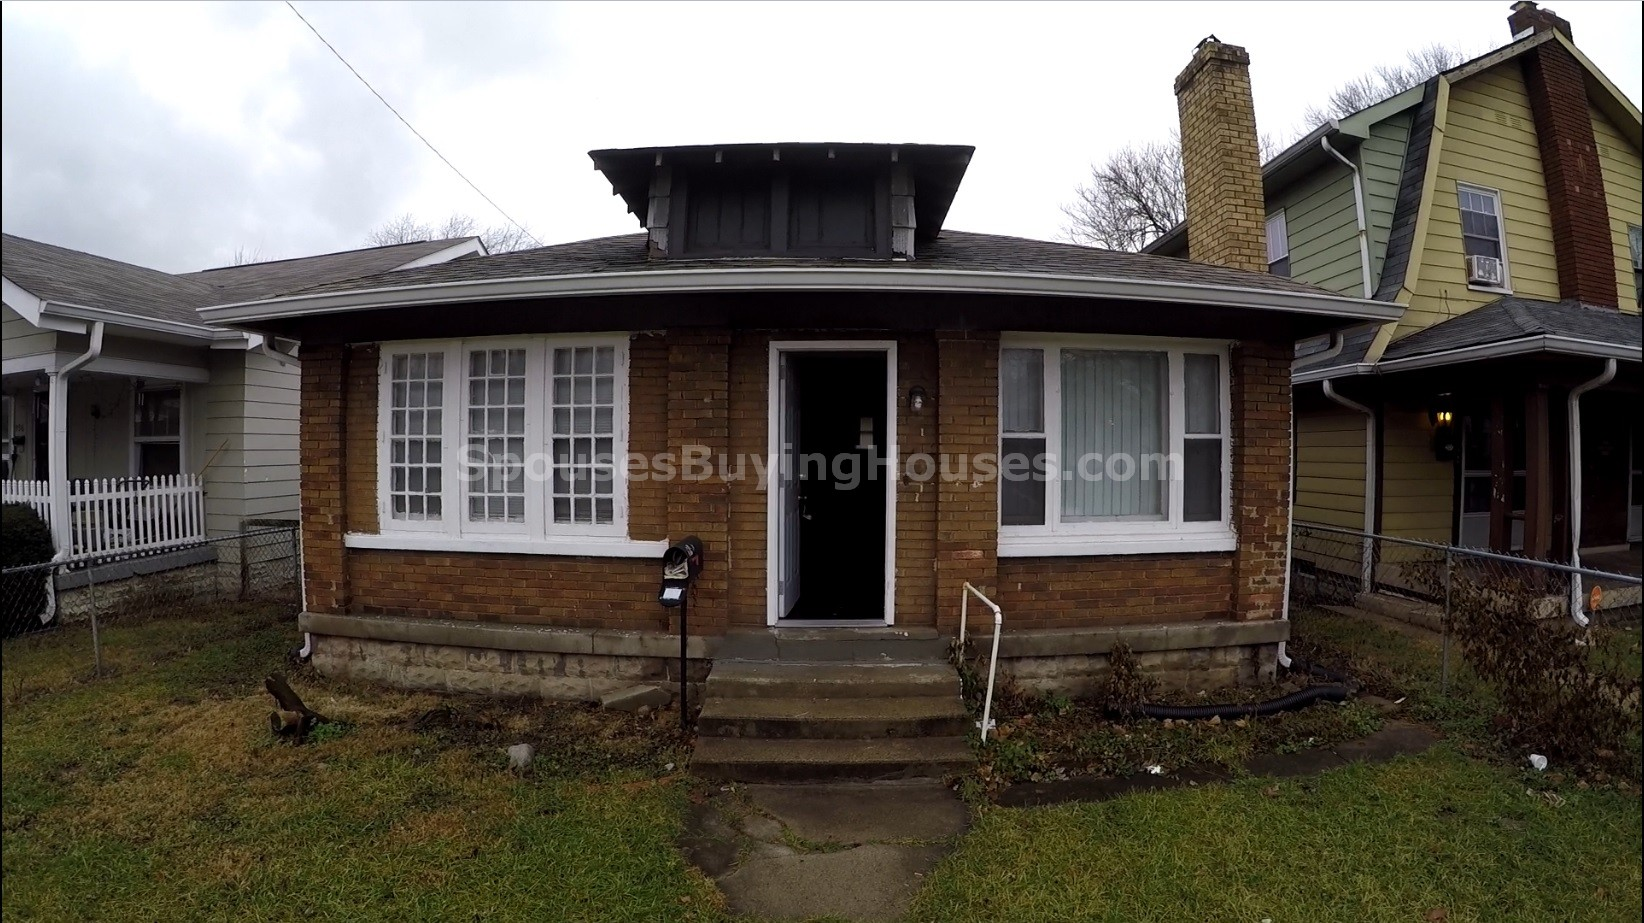 Sell Your House Fast Indianapolis – 940 N Drexel Ave, Indianapolis, IN 46201